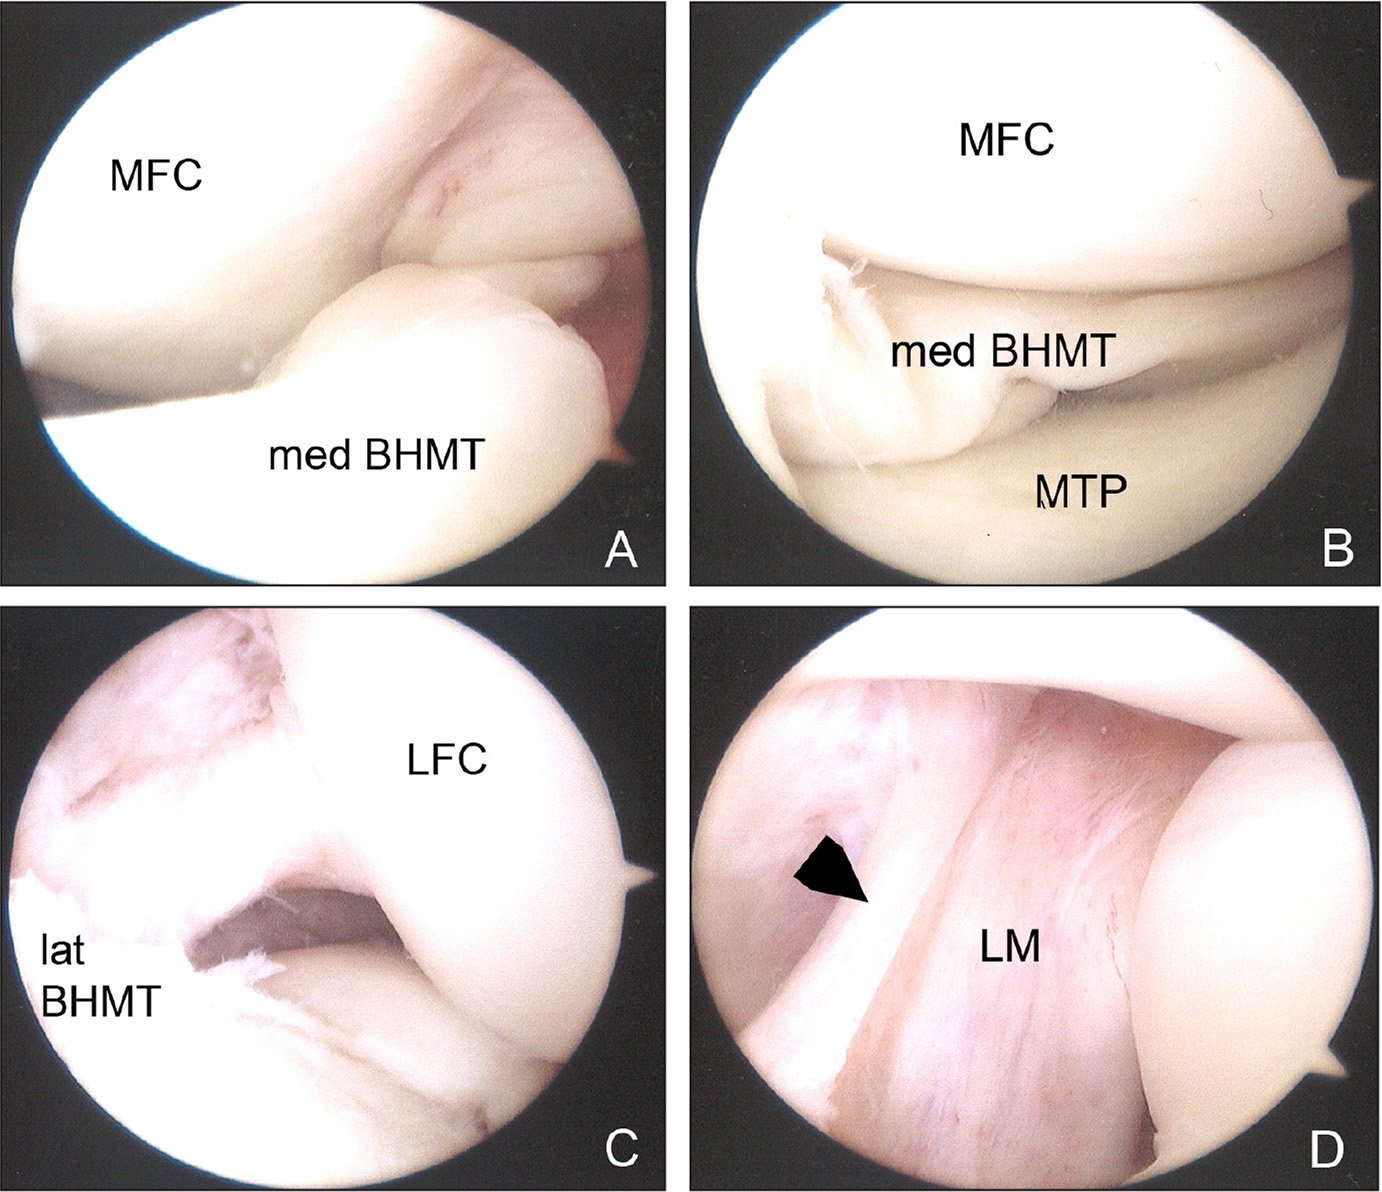 Images from a left knee taken from the anterolateral portal during diagnostic arthroscopy. The medial bucket handle meniscal tear (med BHMT) is seen displaced into the intercondylar notch lateral to the medial femoral condyle (MFC) (A). The medial bucket handle meniscal tear is subsequently seen reduced after manipulation with an arthroscopic probe. The medial tibial plateau (MTP) is seen (B). The lateral bucket handle meniscal tear (lat BHMT) is similarly seen displaced within the intercondylar notch medial to the lateral femoral condyle (LFC) (C). Within the intercondylar notch, the ligamentum mucosum (LM) is seen overlying the anterior cruciate ligament (arrowhead) (D).